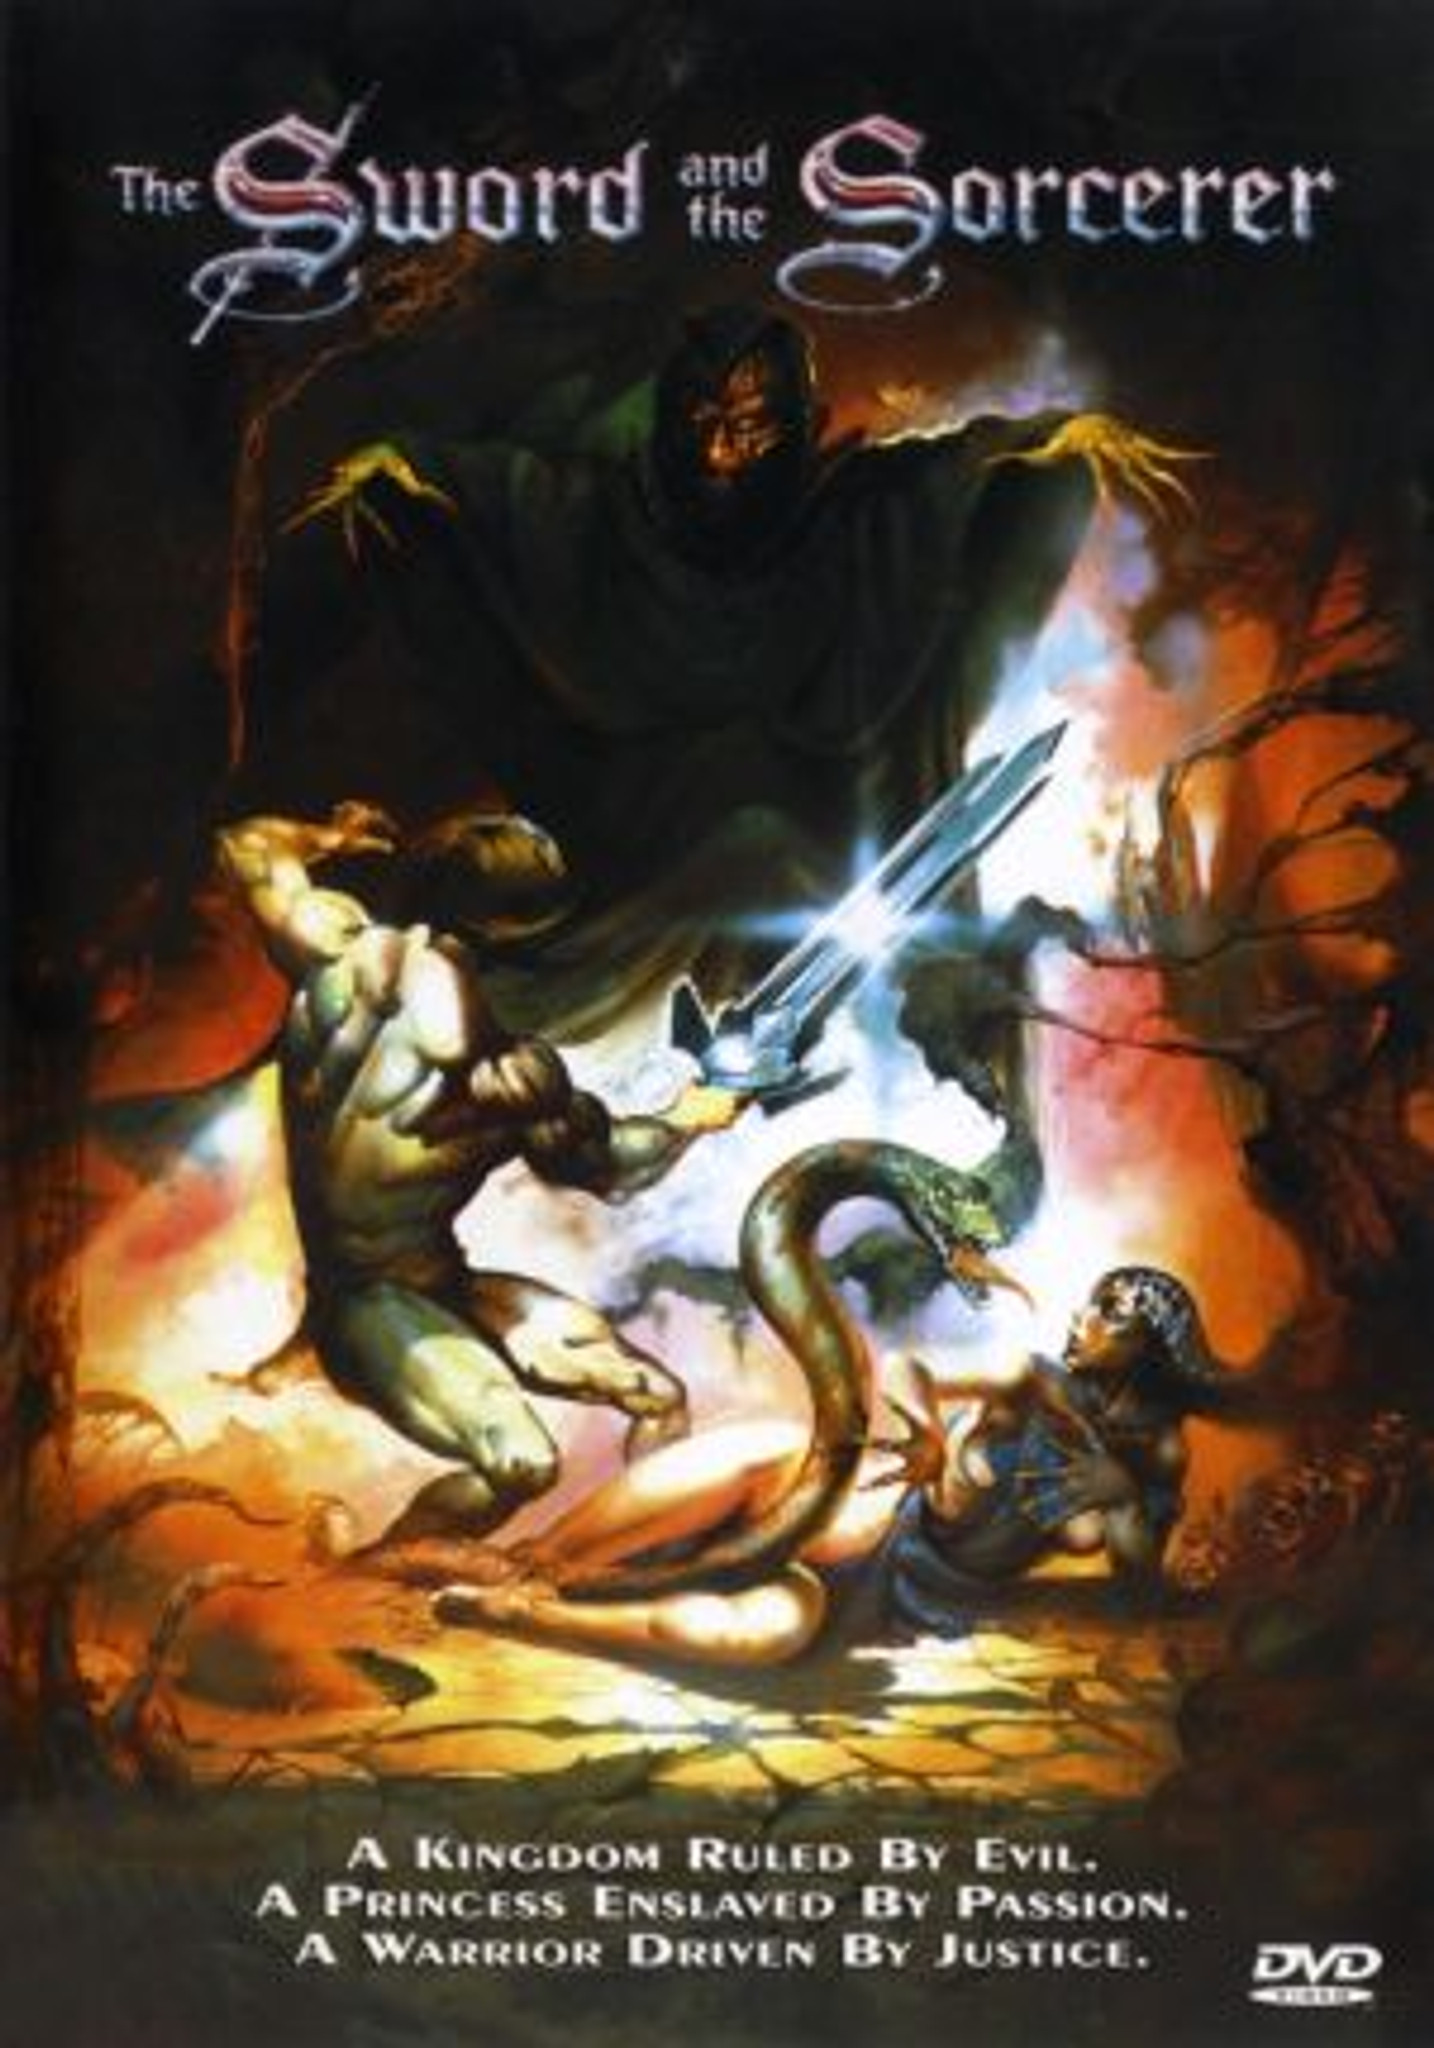 The Sword and the Sorcerer (1982) Dvd